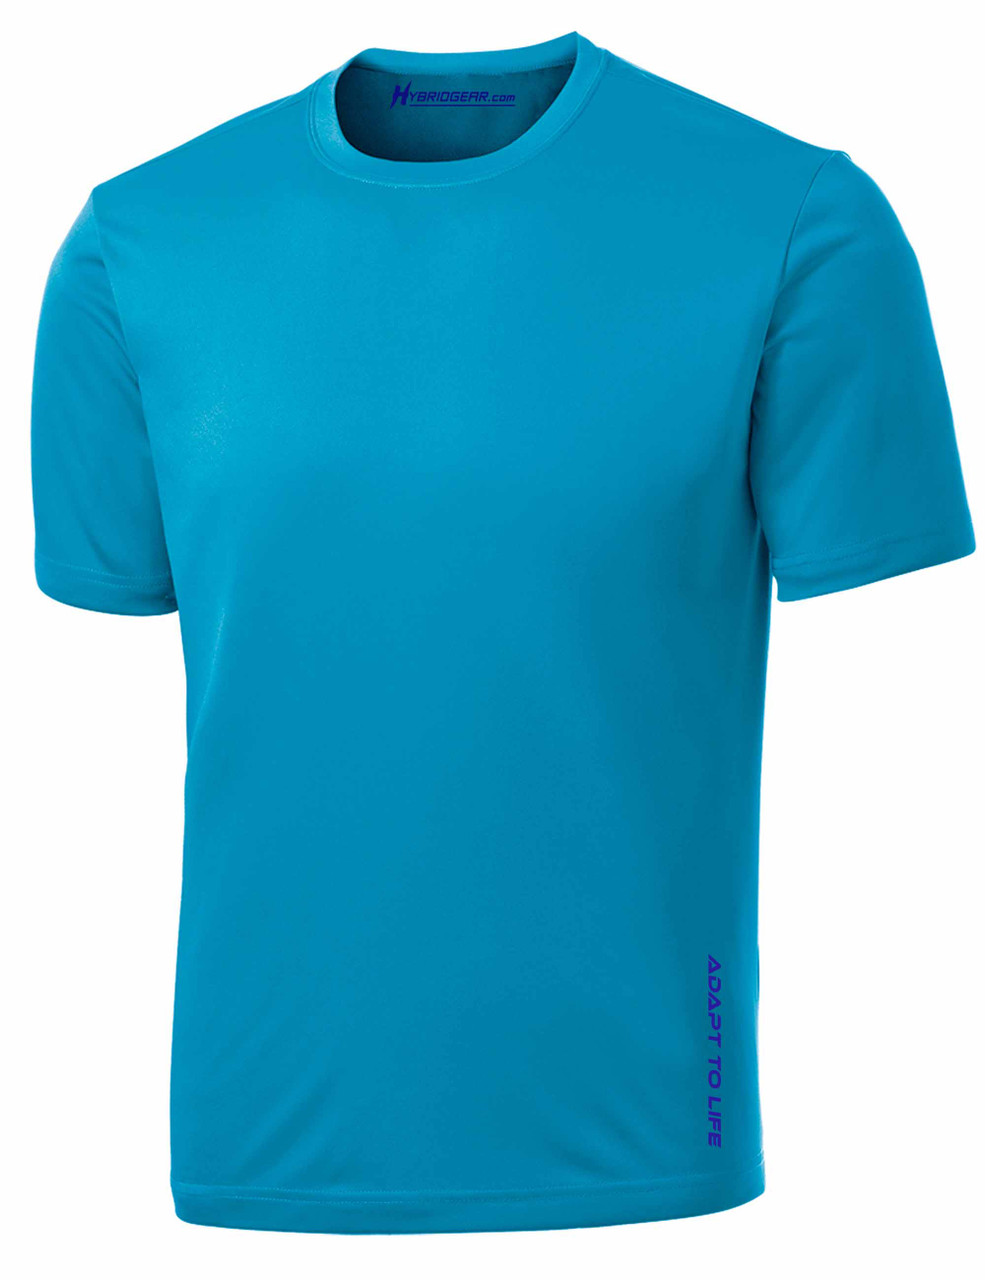 SPECIAL MAGIC Womens Sports T-Shirt Breathable Running Tee V-Neck Moisture Wicking